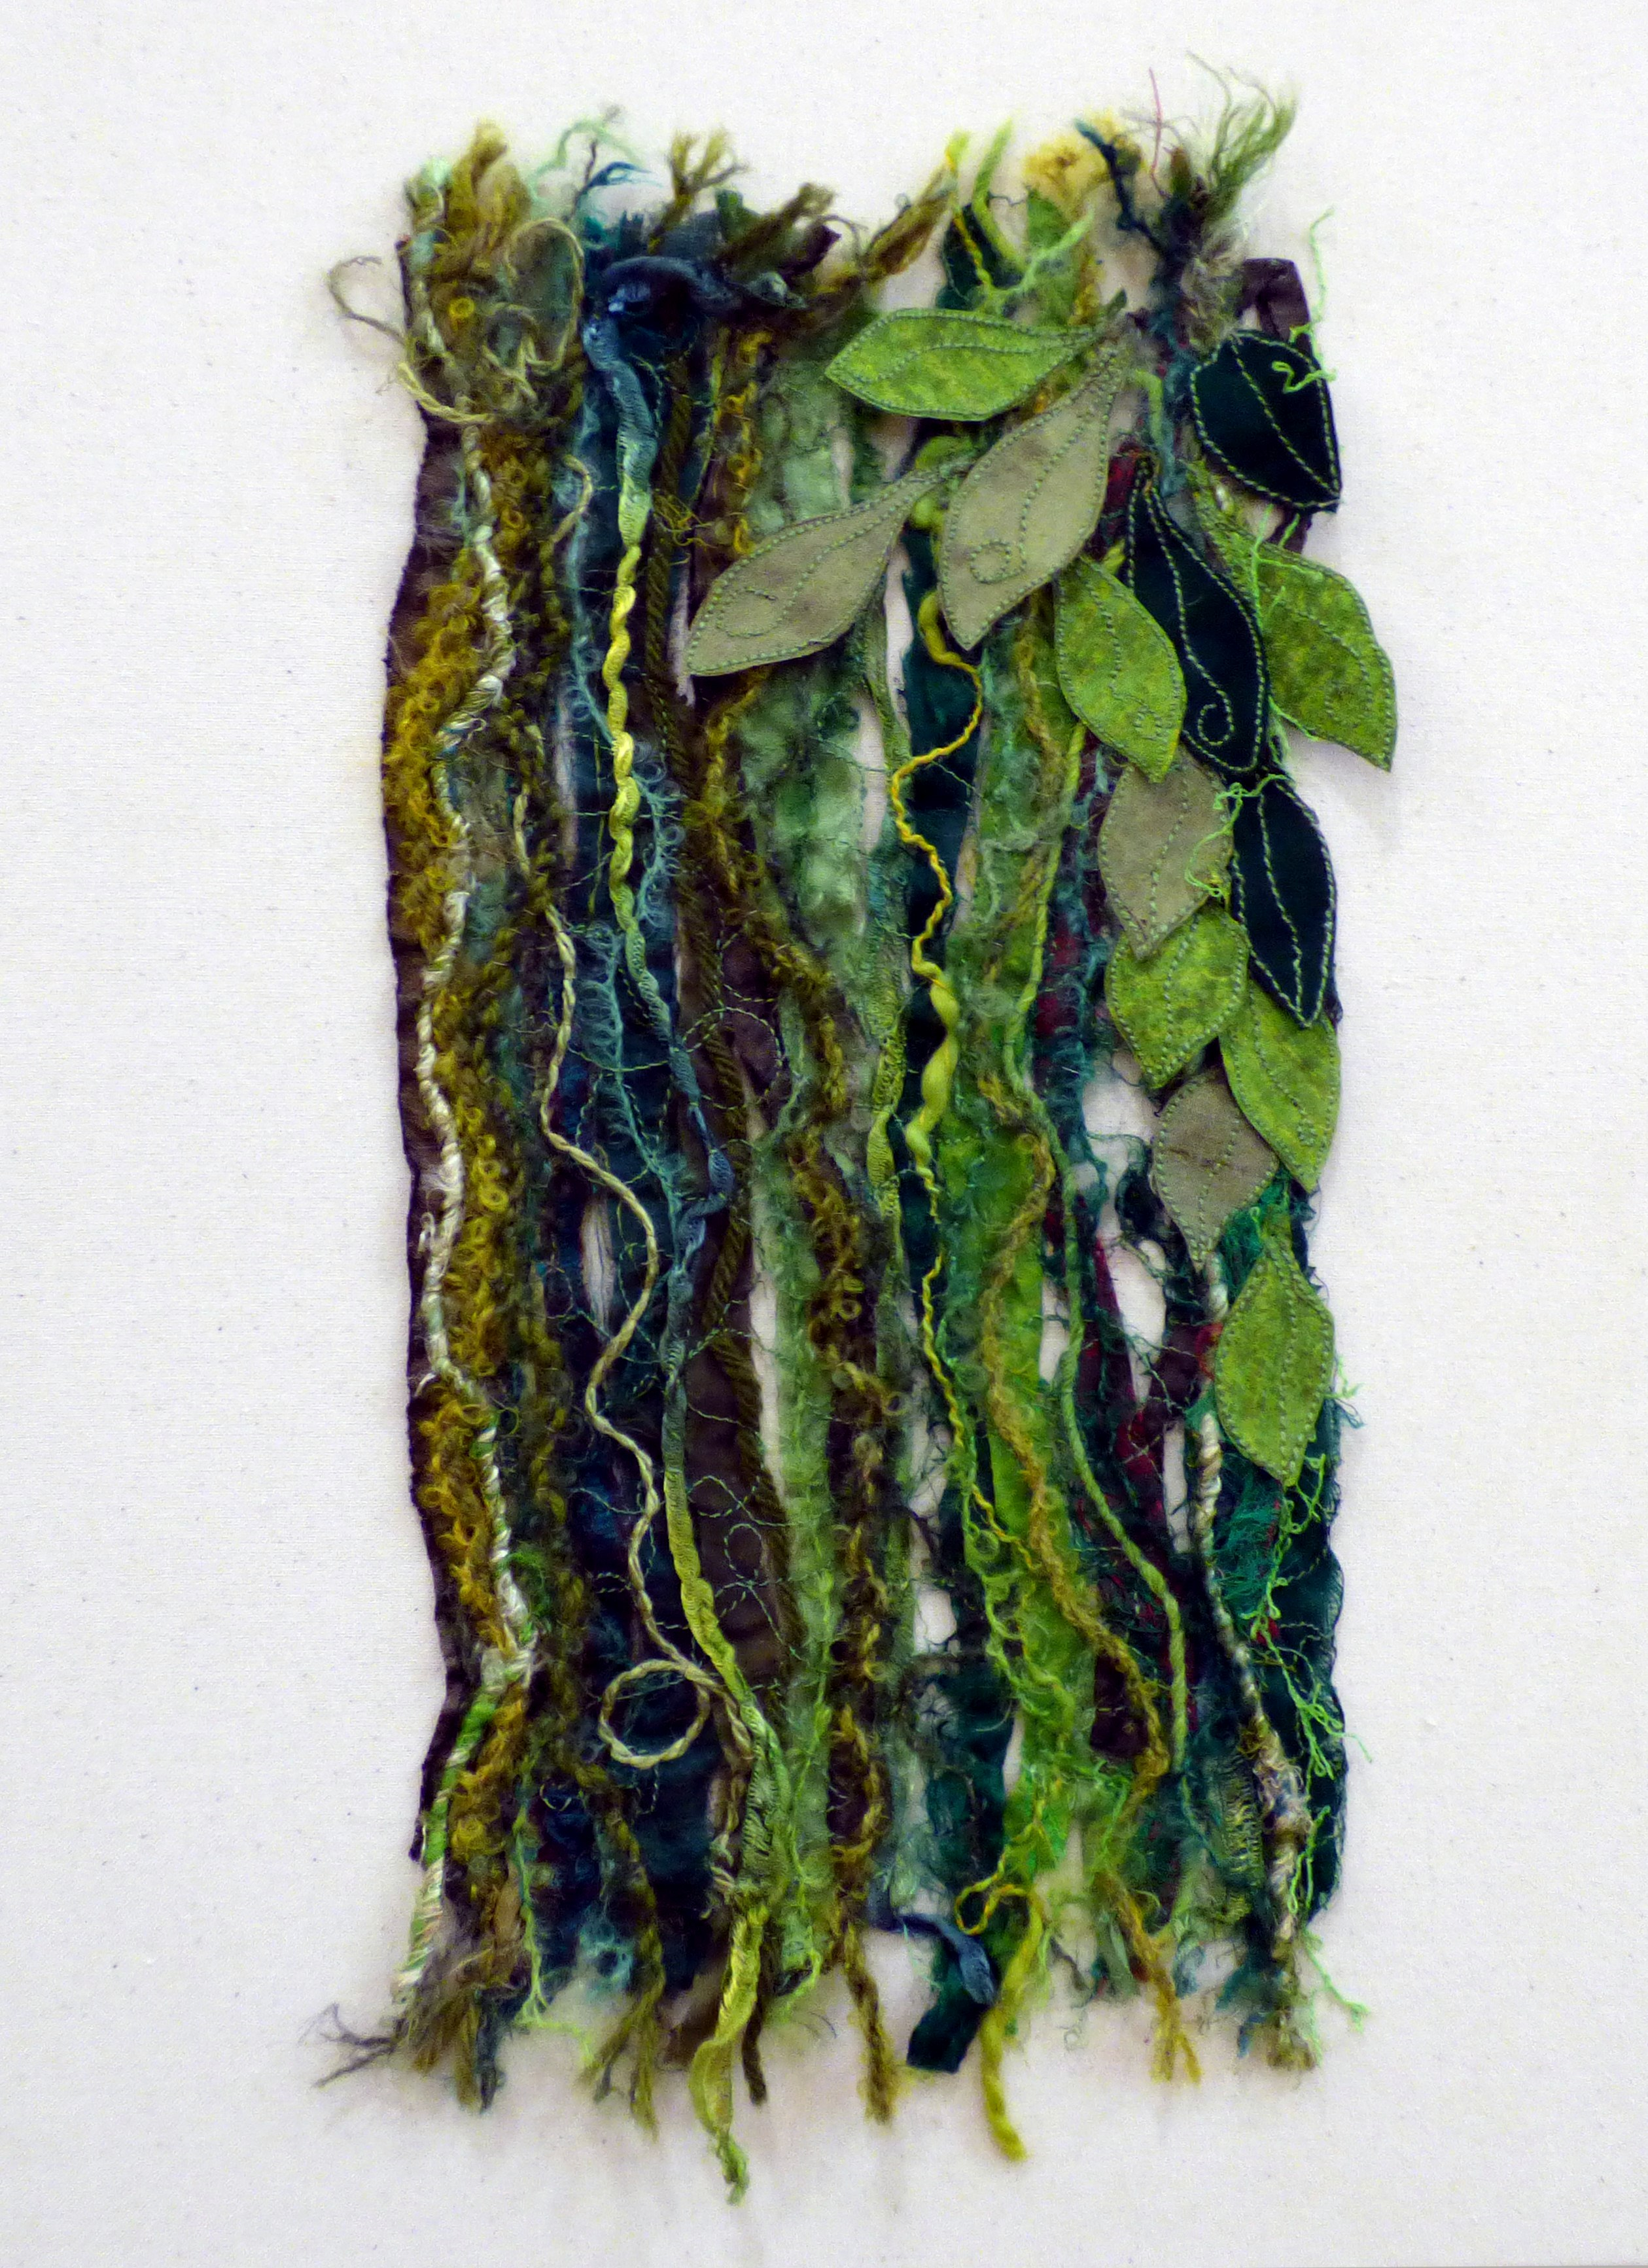 TREES AND LEAVES: SUMMER by Carol Condliffe, Macclesfield & District EG, machine stitching and couching